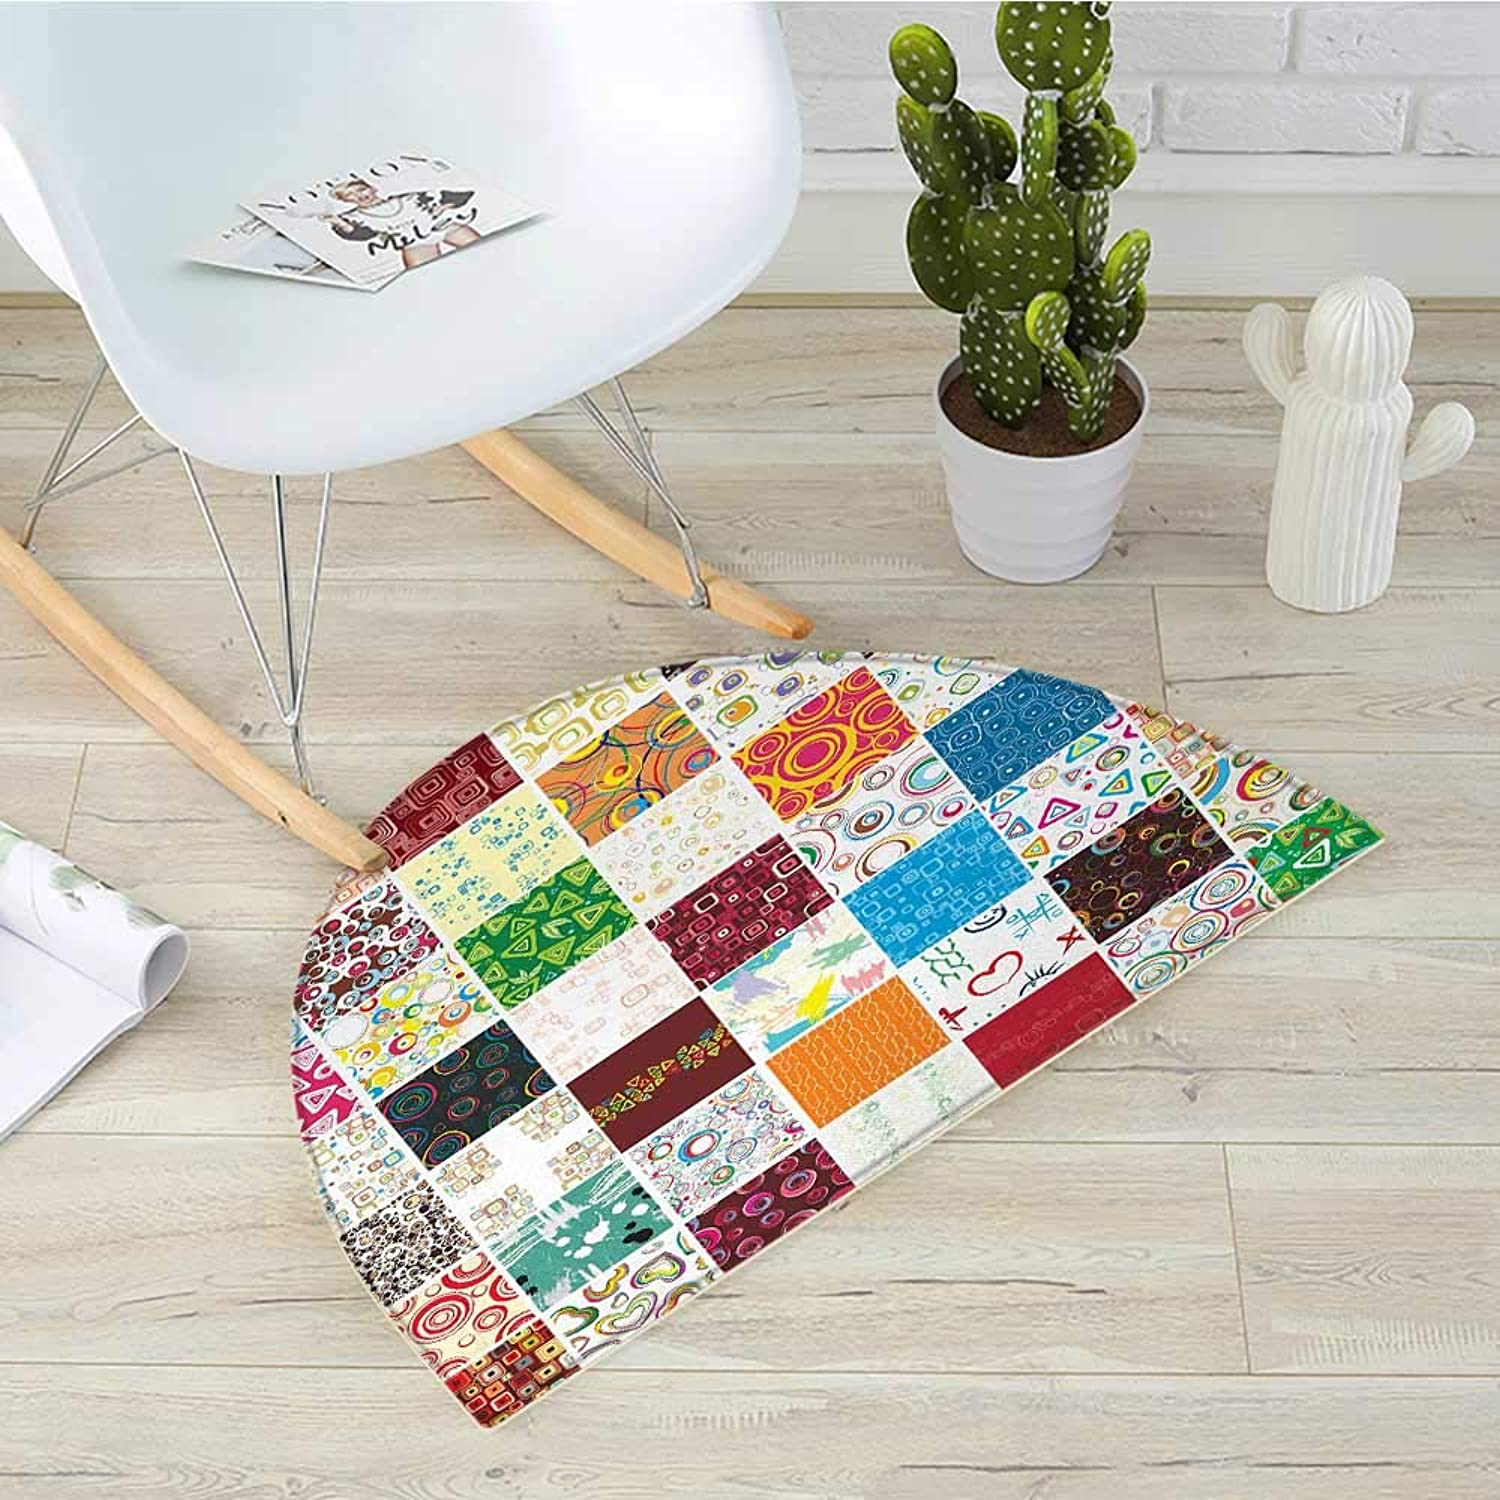 Retro Semicircular CushionBig Patchwork of Different Patterns Traditional Classical Old Fashioned and Festive Entry Door Mat H 39.3  xD 59  Multicolor